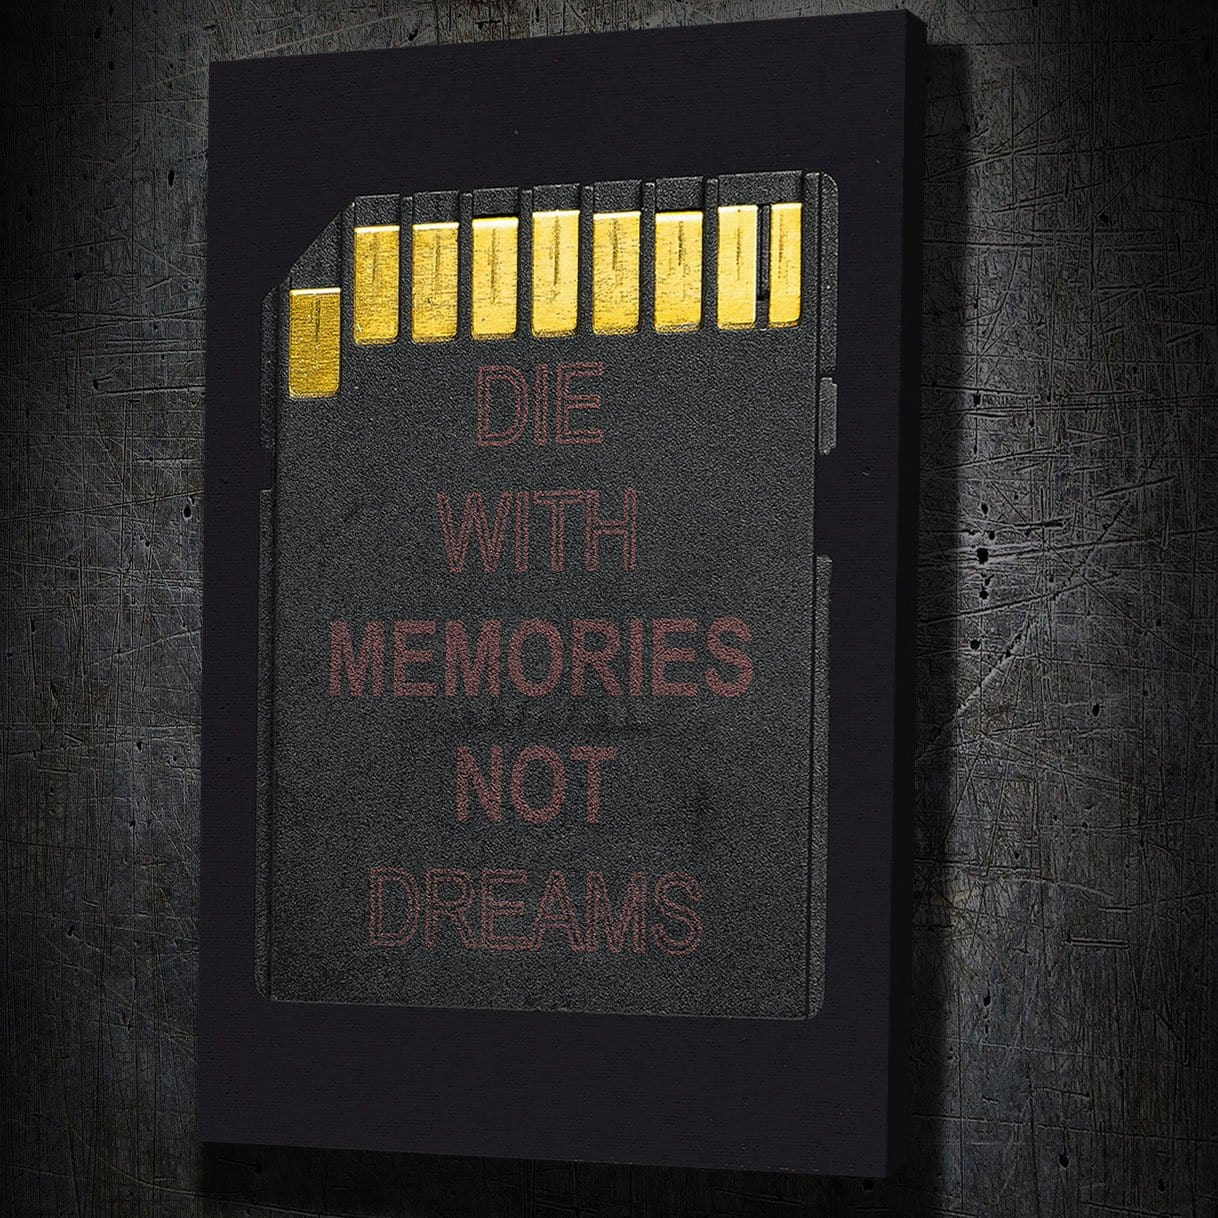 Die with Memories - Framed Canvas Painting Wall Art Office Decor, large modern pop artwork for home or office, Entrepreneur Inspirational and motivational Quotes on Canvas great for man cave or home. Perfect for Artwork Addicts. Made in USA, FREE Shipping.